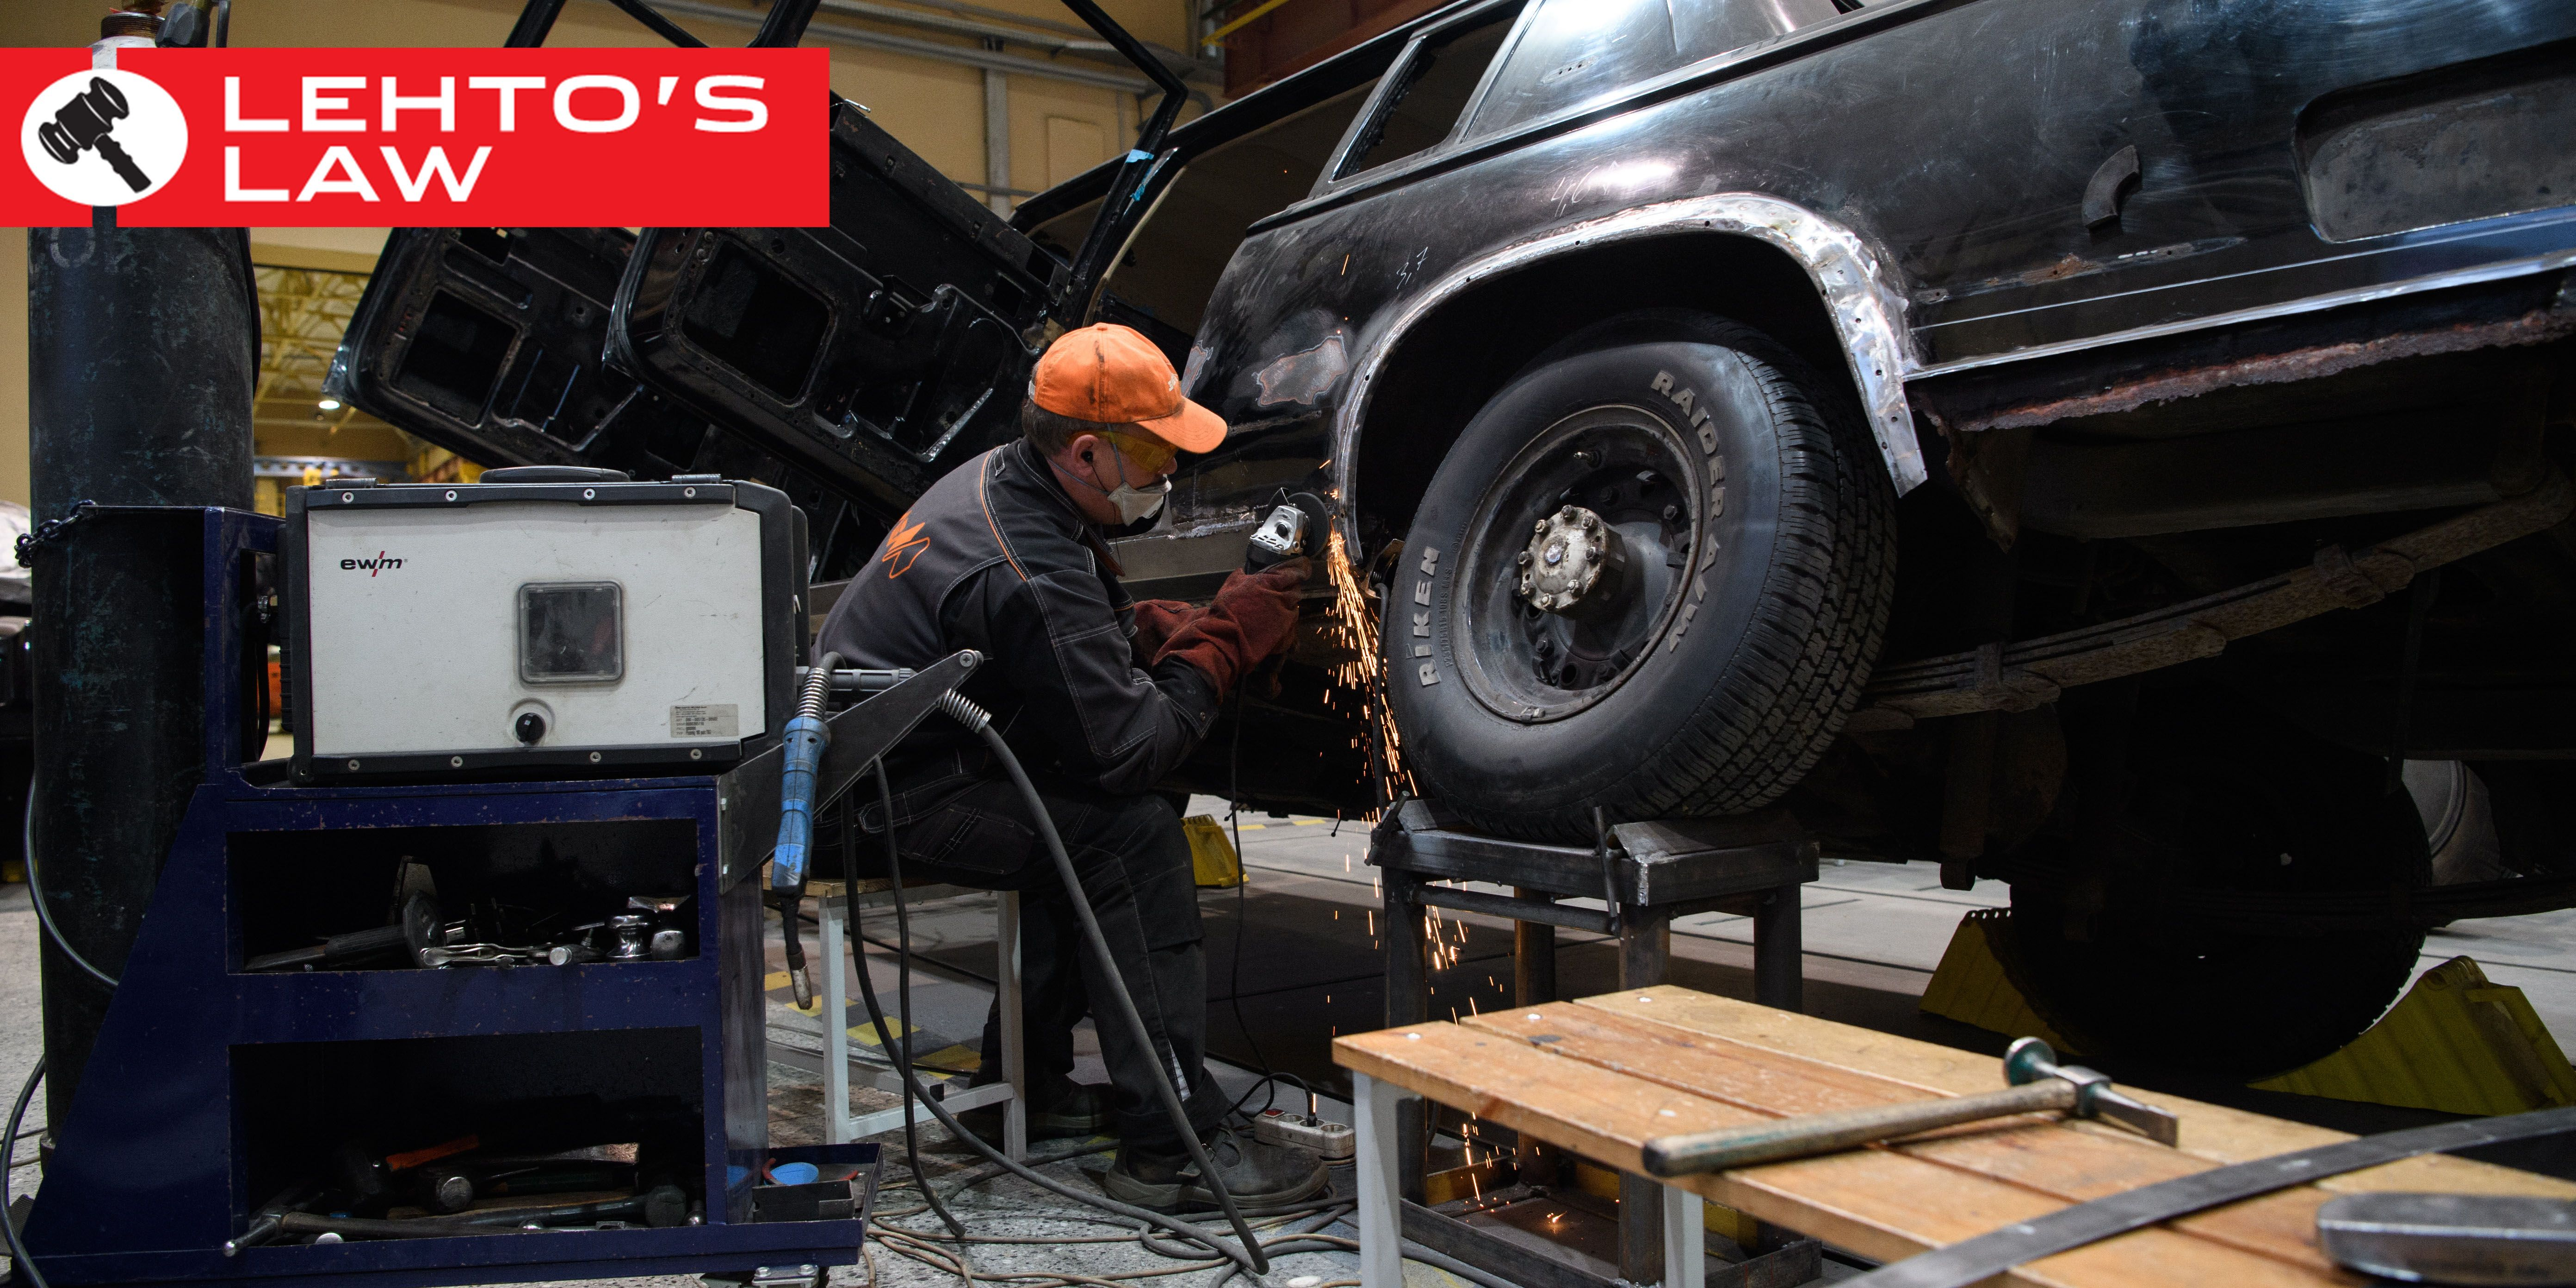 Not All Aftermarket Parts Will Void Your Warranty